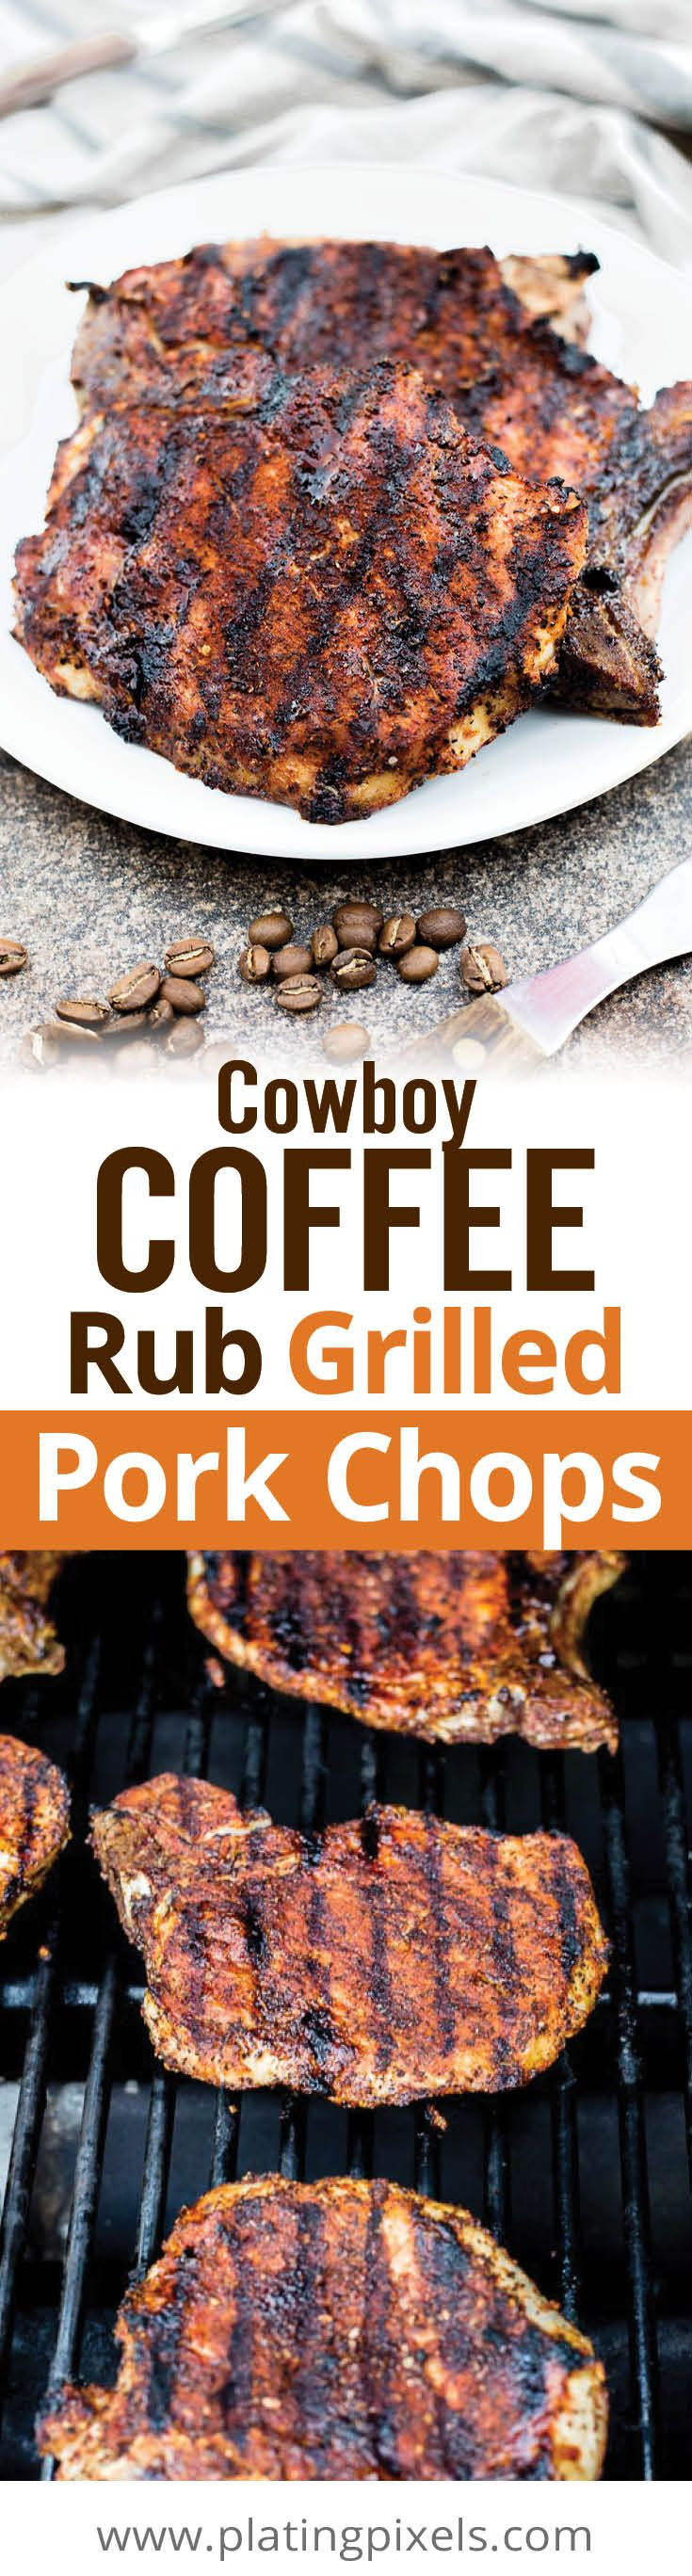 Easy spiced Cowboy Coffee Rub Grilled Pork Chops. Coffee, brown sugar, smoked paprika, garlic, cumin, spices and herbs creates caramelized, tender grilled pork. Clean, natural ingredients for a gluten free, healthy barbecue meat. - www.platingpixels.com